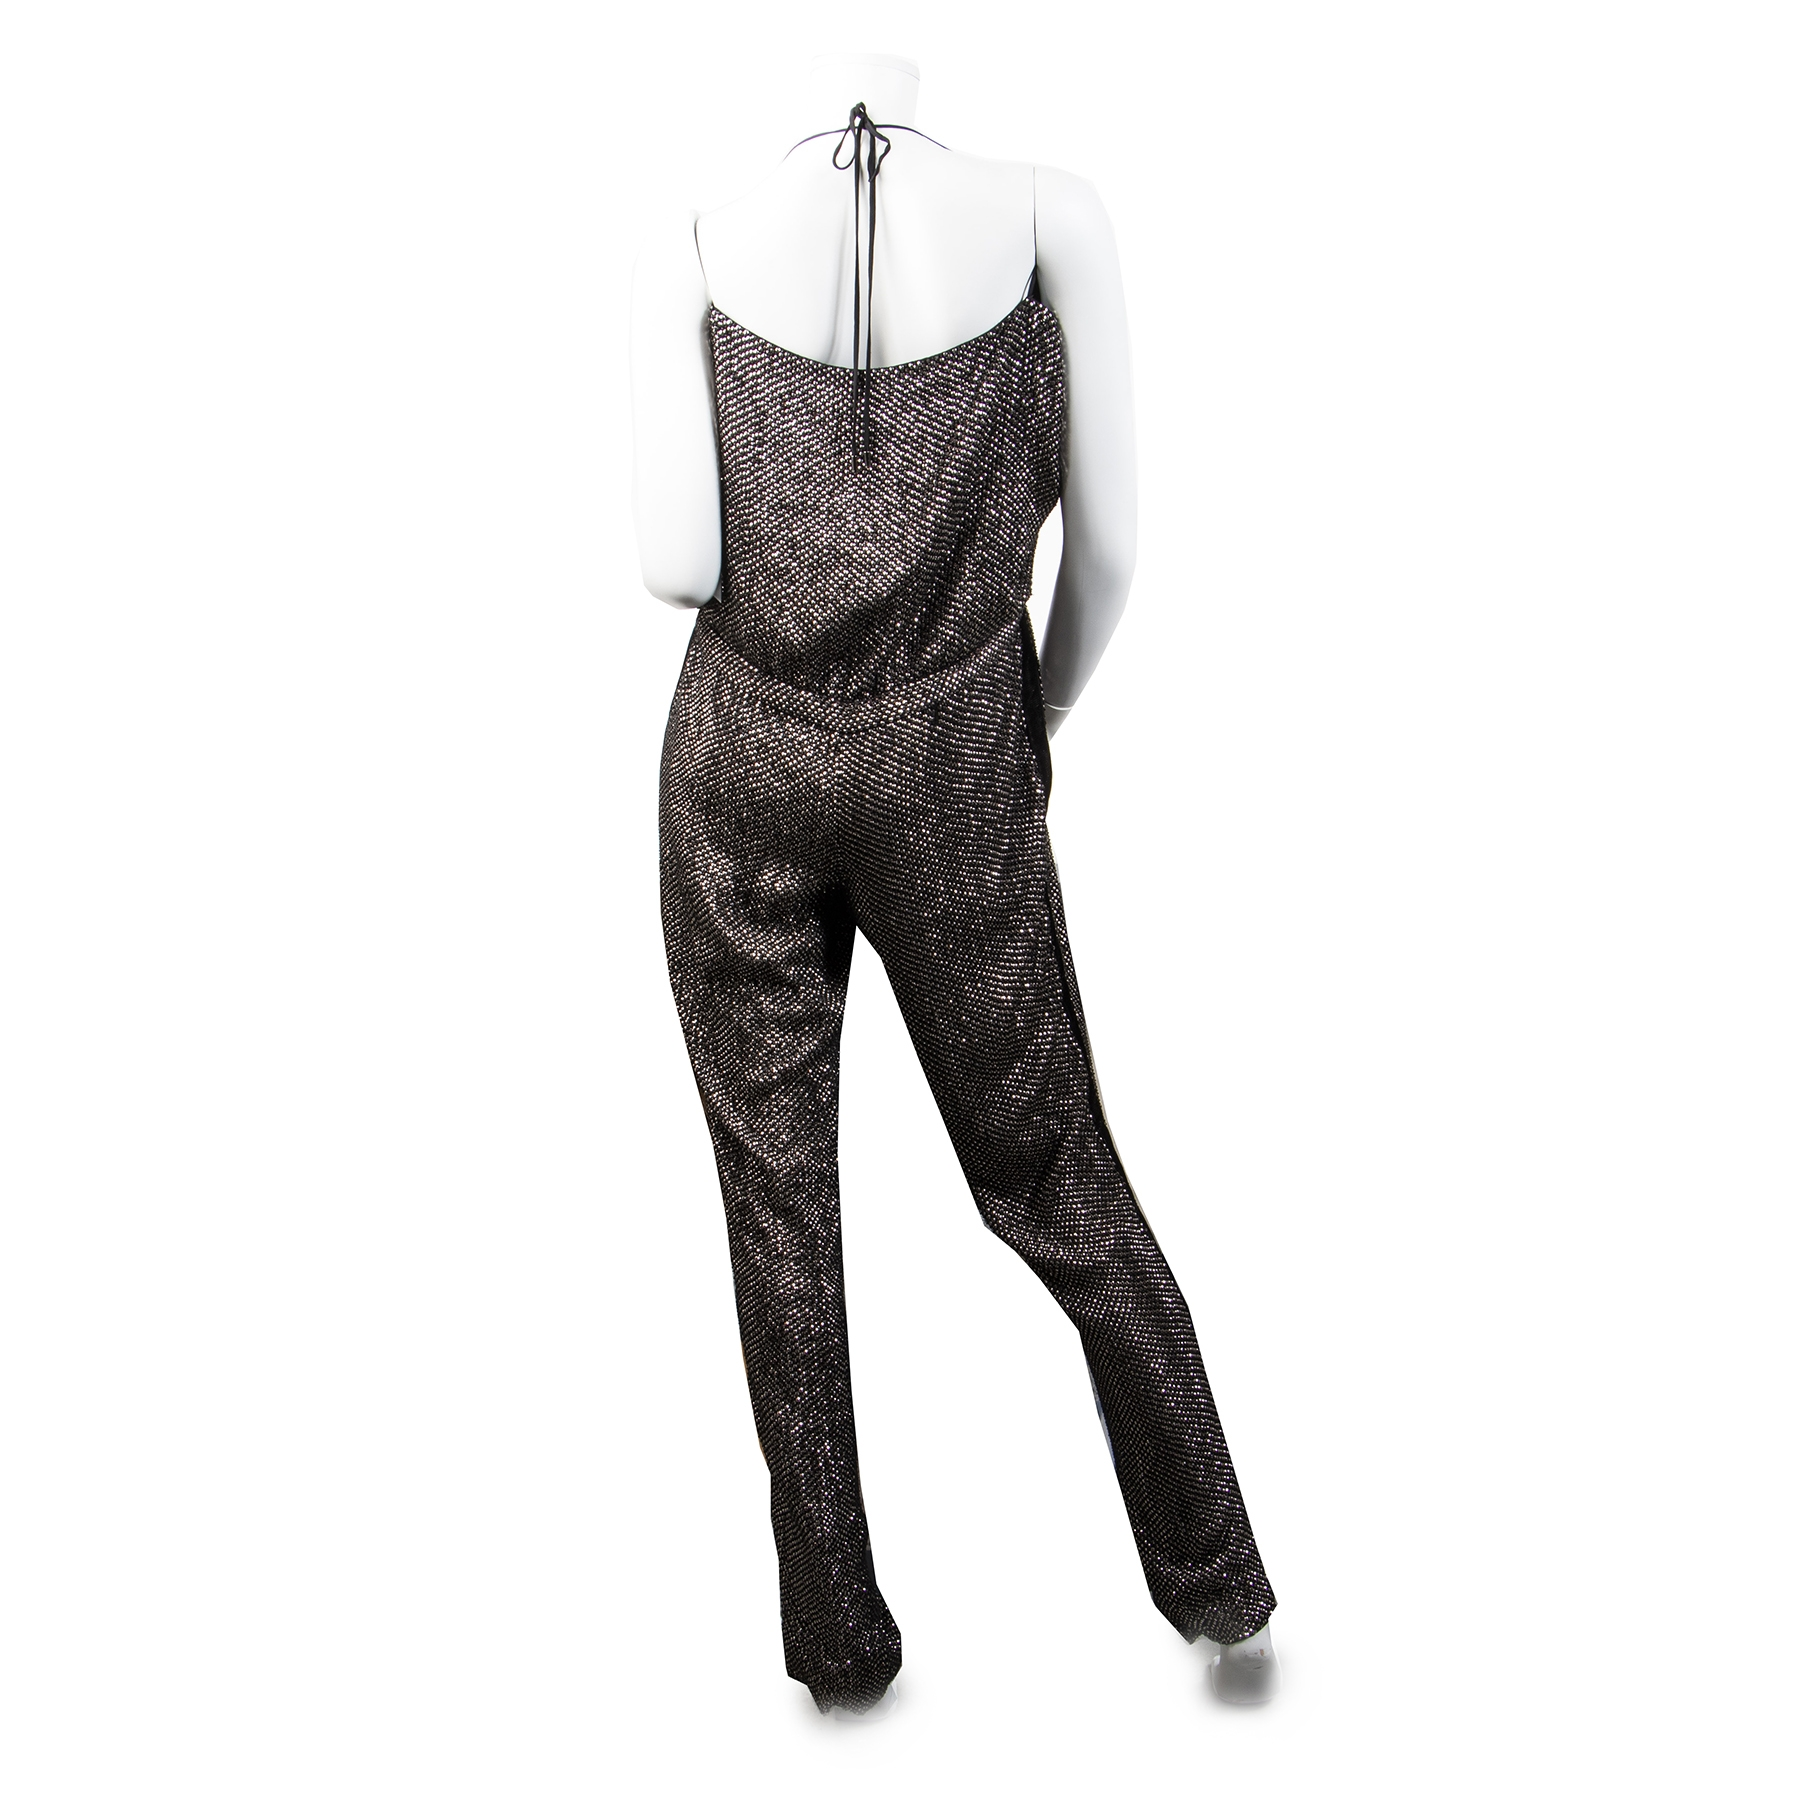 Buy Secondhand Gucci Black Crystal-Embellished Jumpsuit - Size 42 at the right price safe and secure online LabelLOV luxury brand webshop Antwerp Belgium